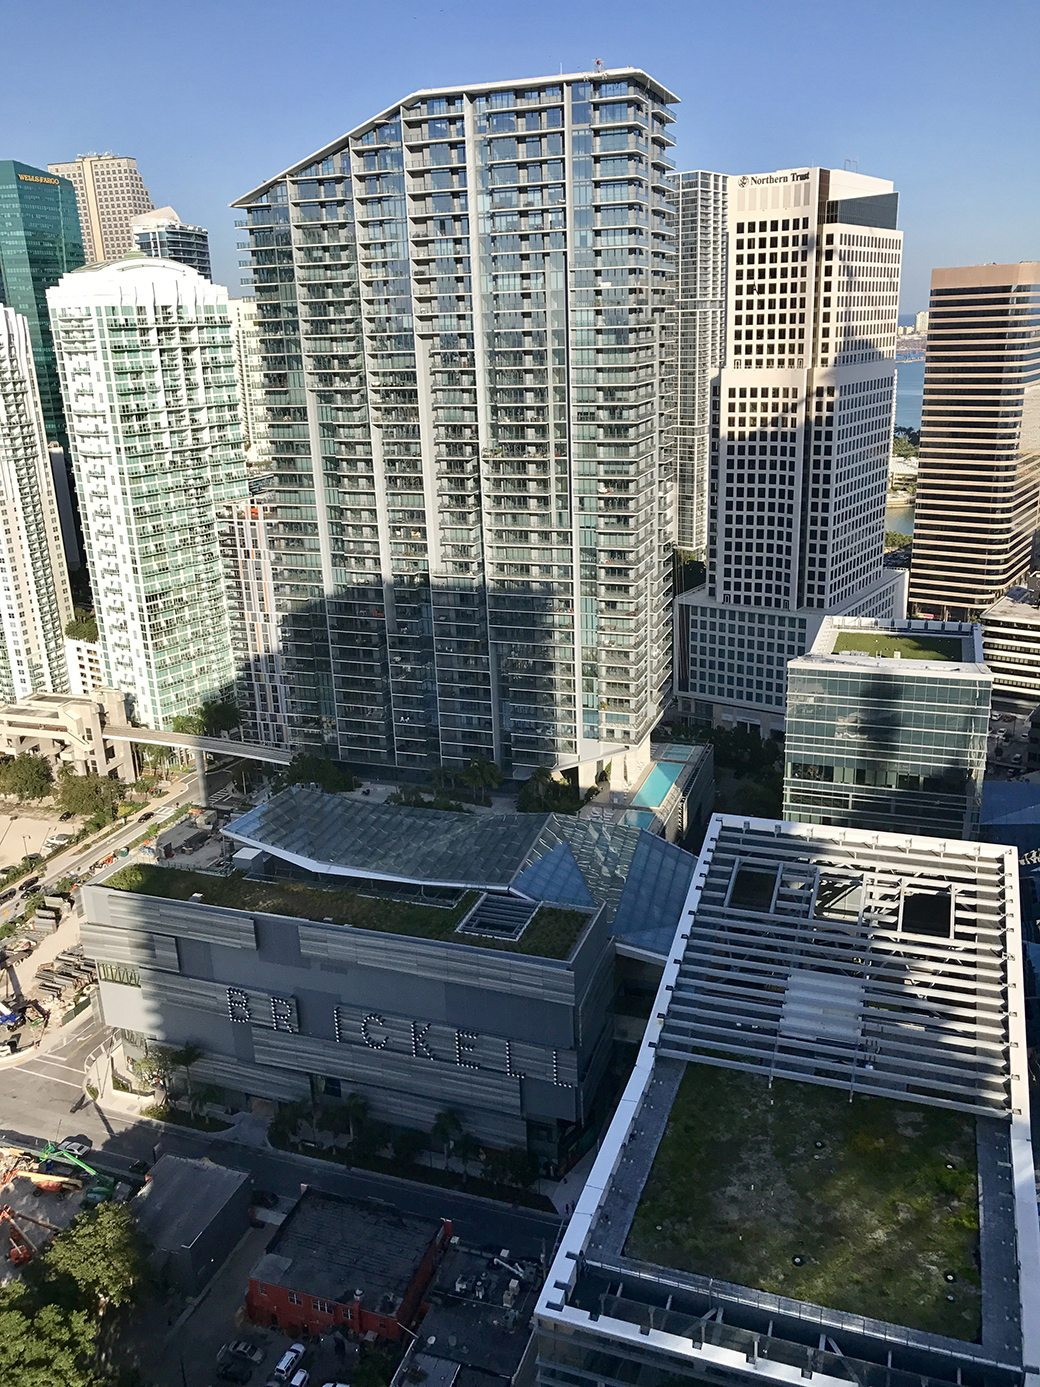 Brickell City Centre Rise4 15 27 PM